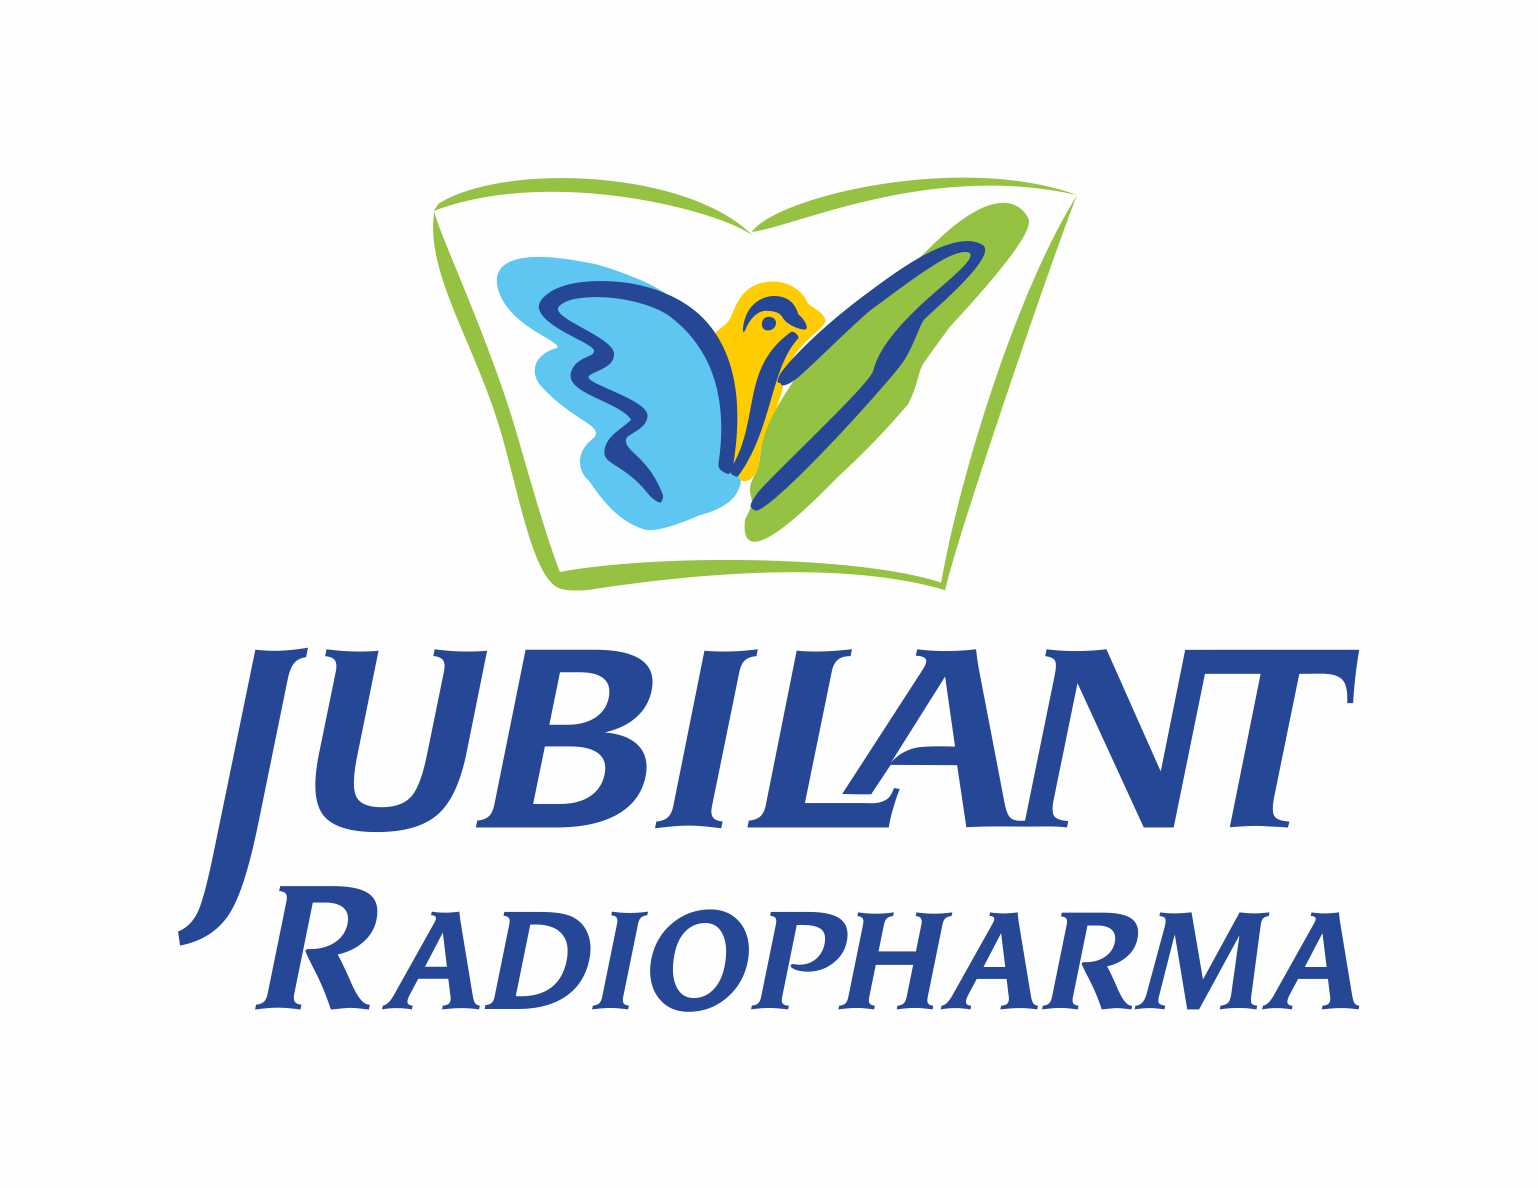 Eckert & Ziegler's GalliaPharm® to Be Distributed by Jubilant RadiopharmaTM in Canada